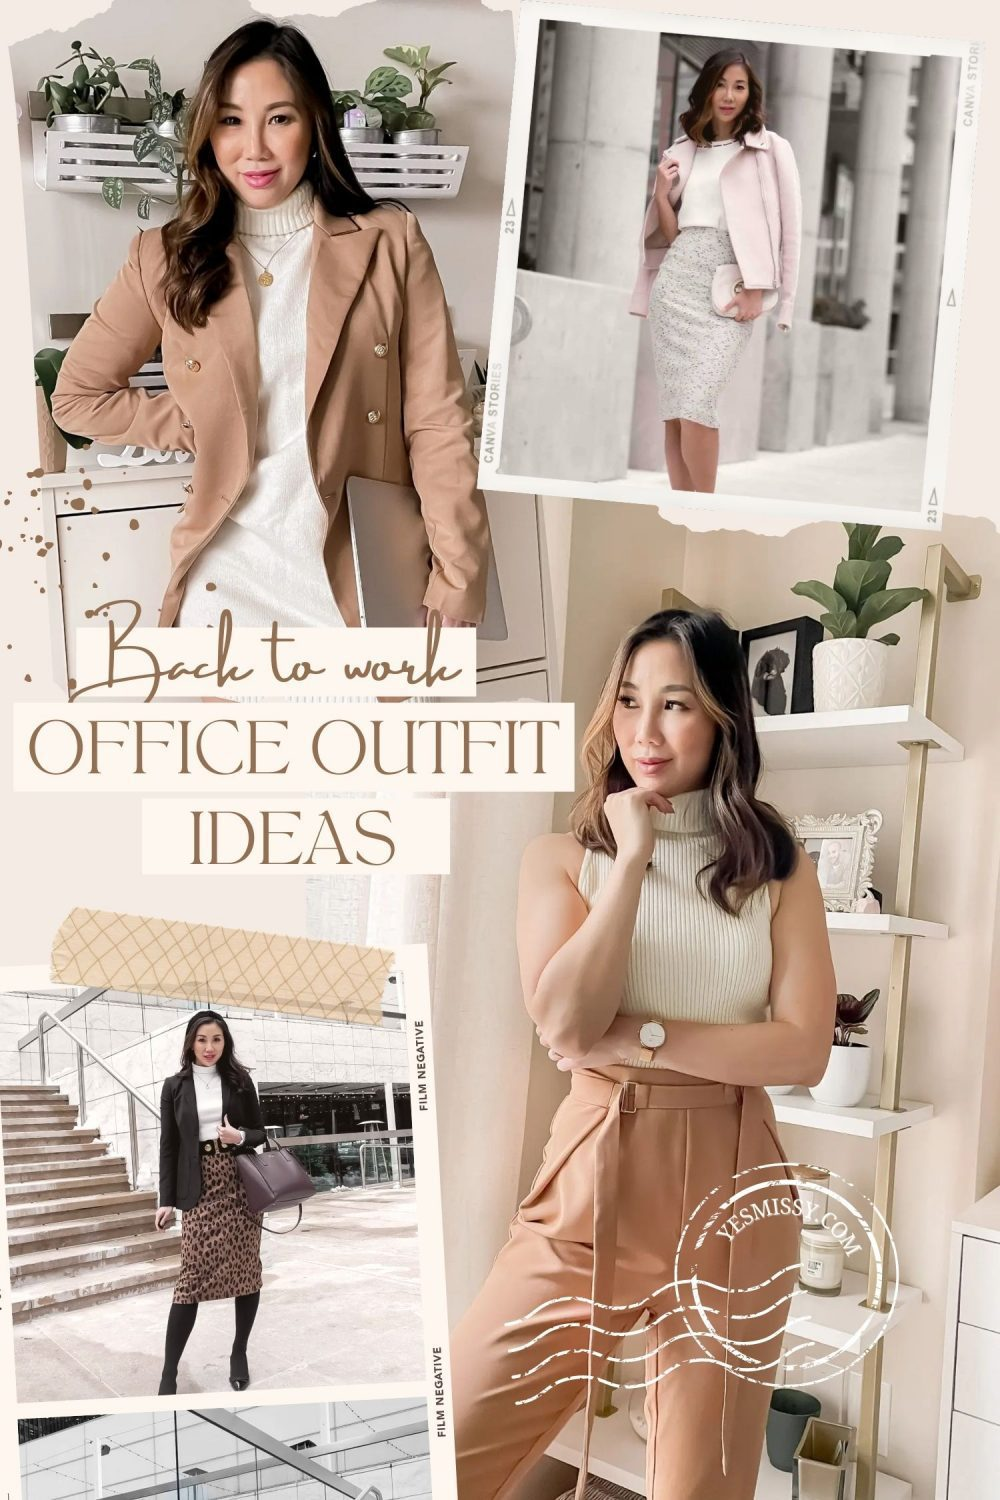 Back to the office? Here are some office outfit ideas to help you get dressed in the morning. Visit my blog yesmissy.com for fall and winter workwear looks, day to night dresses, and the latest trends.